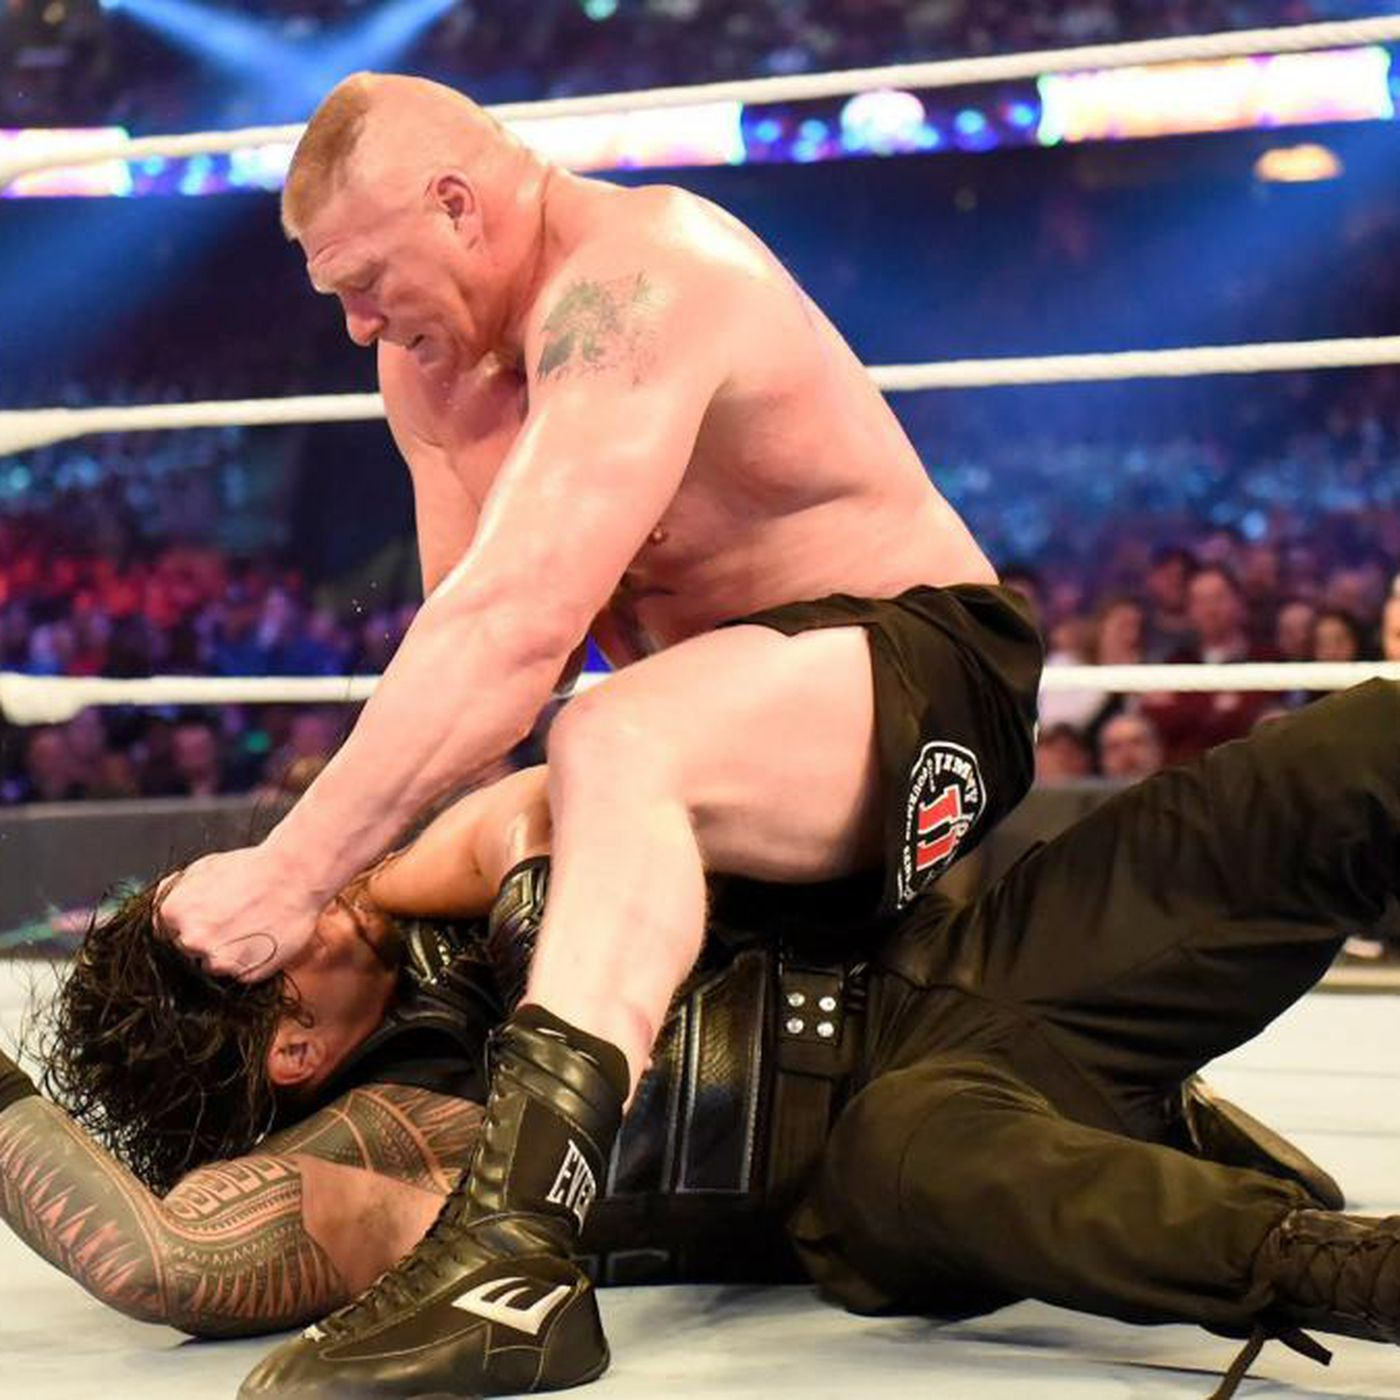 WWE WrestleMania 2018 results: Winners and highlights from